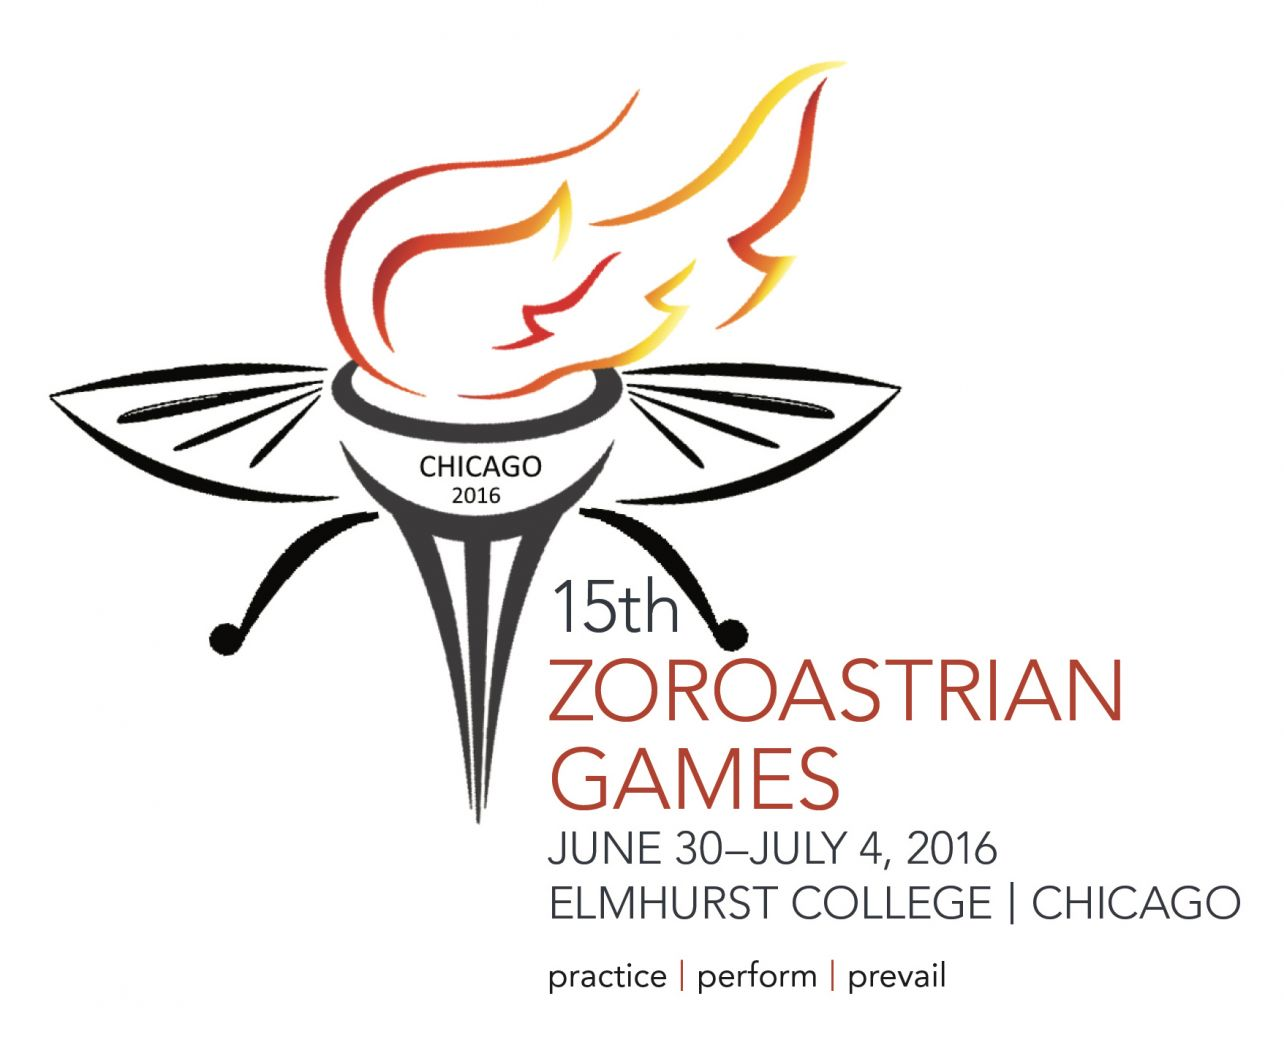 zoroastrian games 2016 logo Final 120715